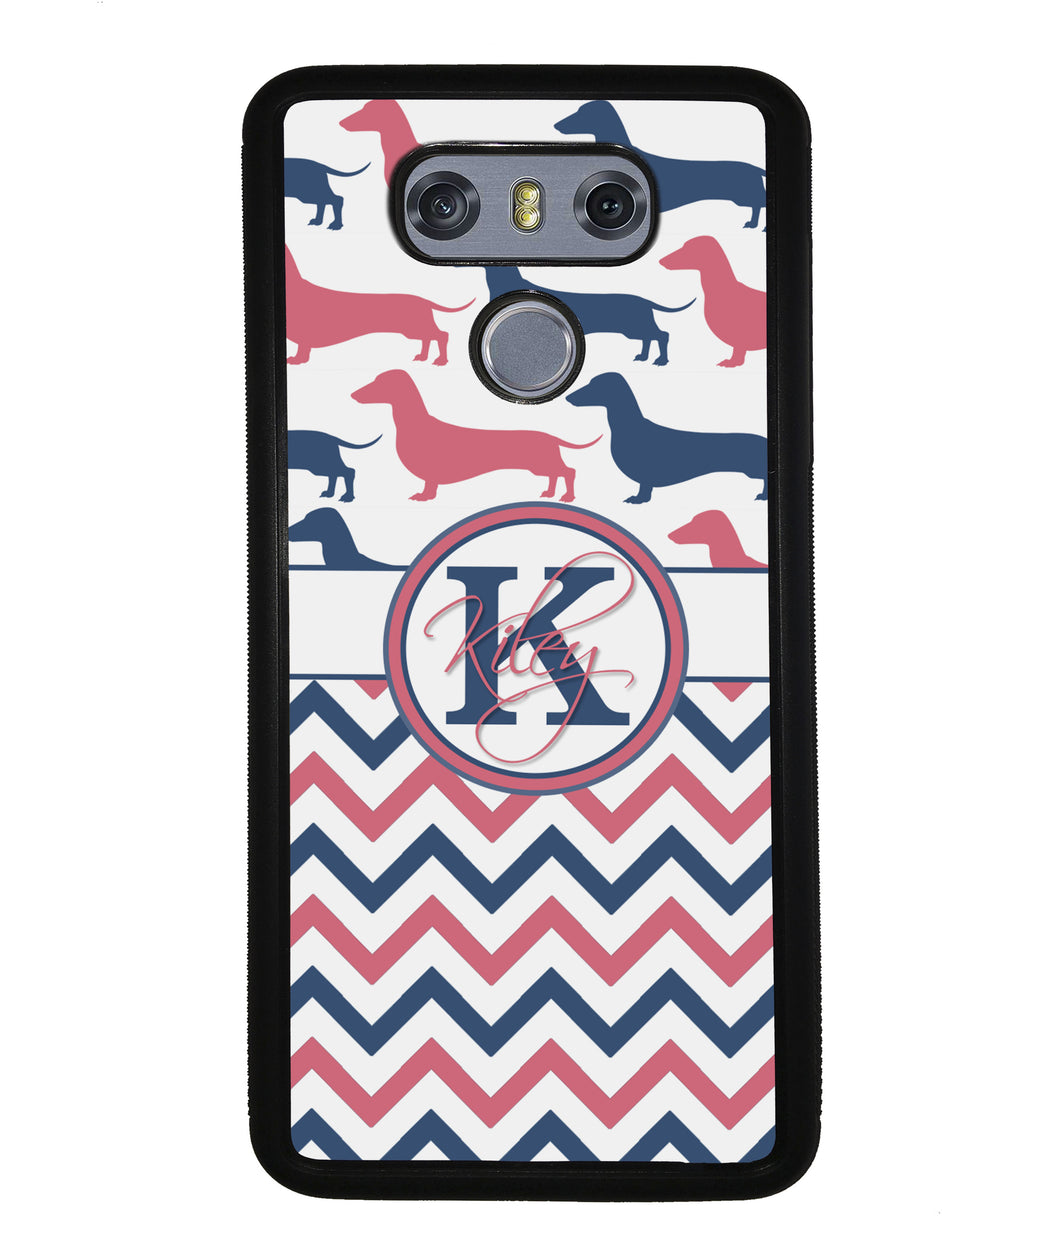 Dachshund Pink and Blue Chevron Personalized | LG Phone Case